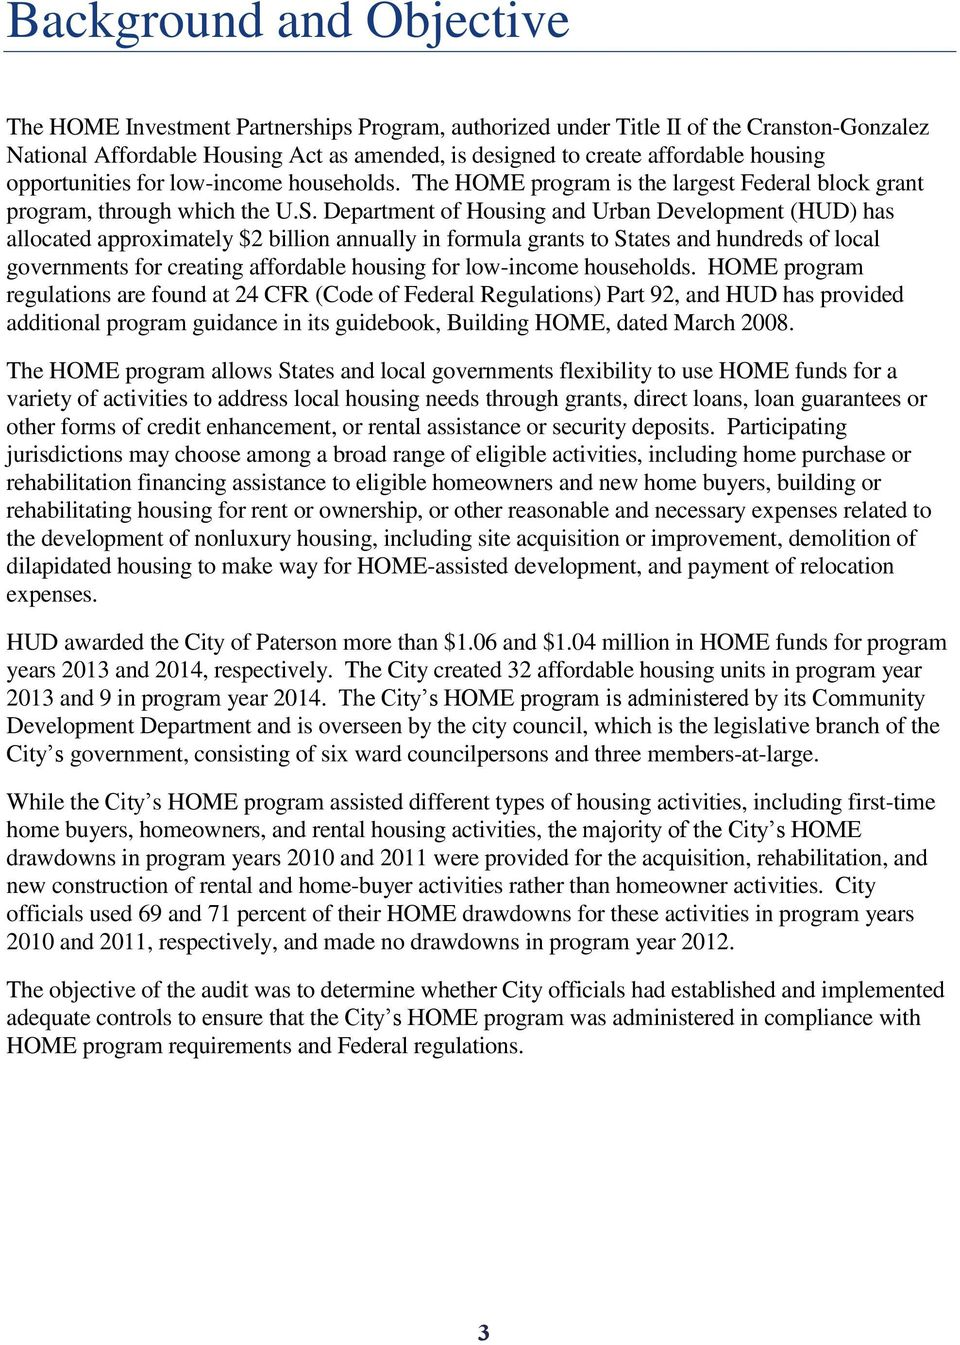 Department of Housing and Urban Development (HUD) has allocated approximately $2 billion annually in formula grants to States and hundreds of local governments for creating affordable housing for